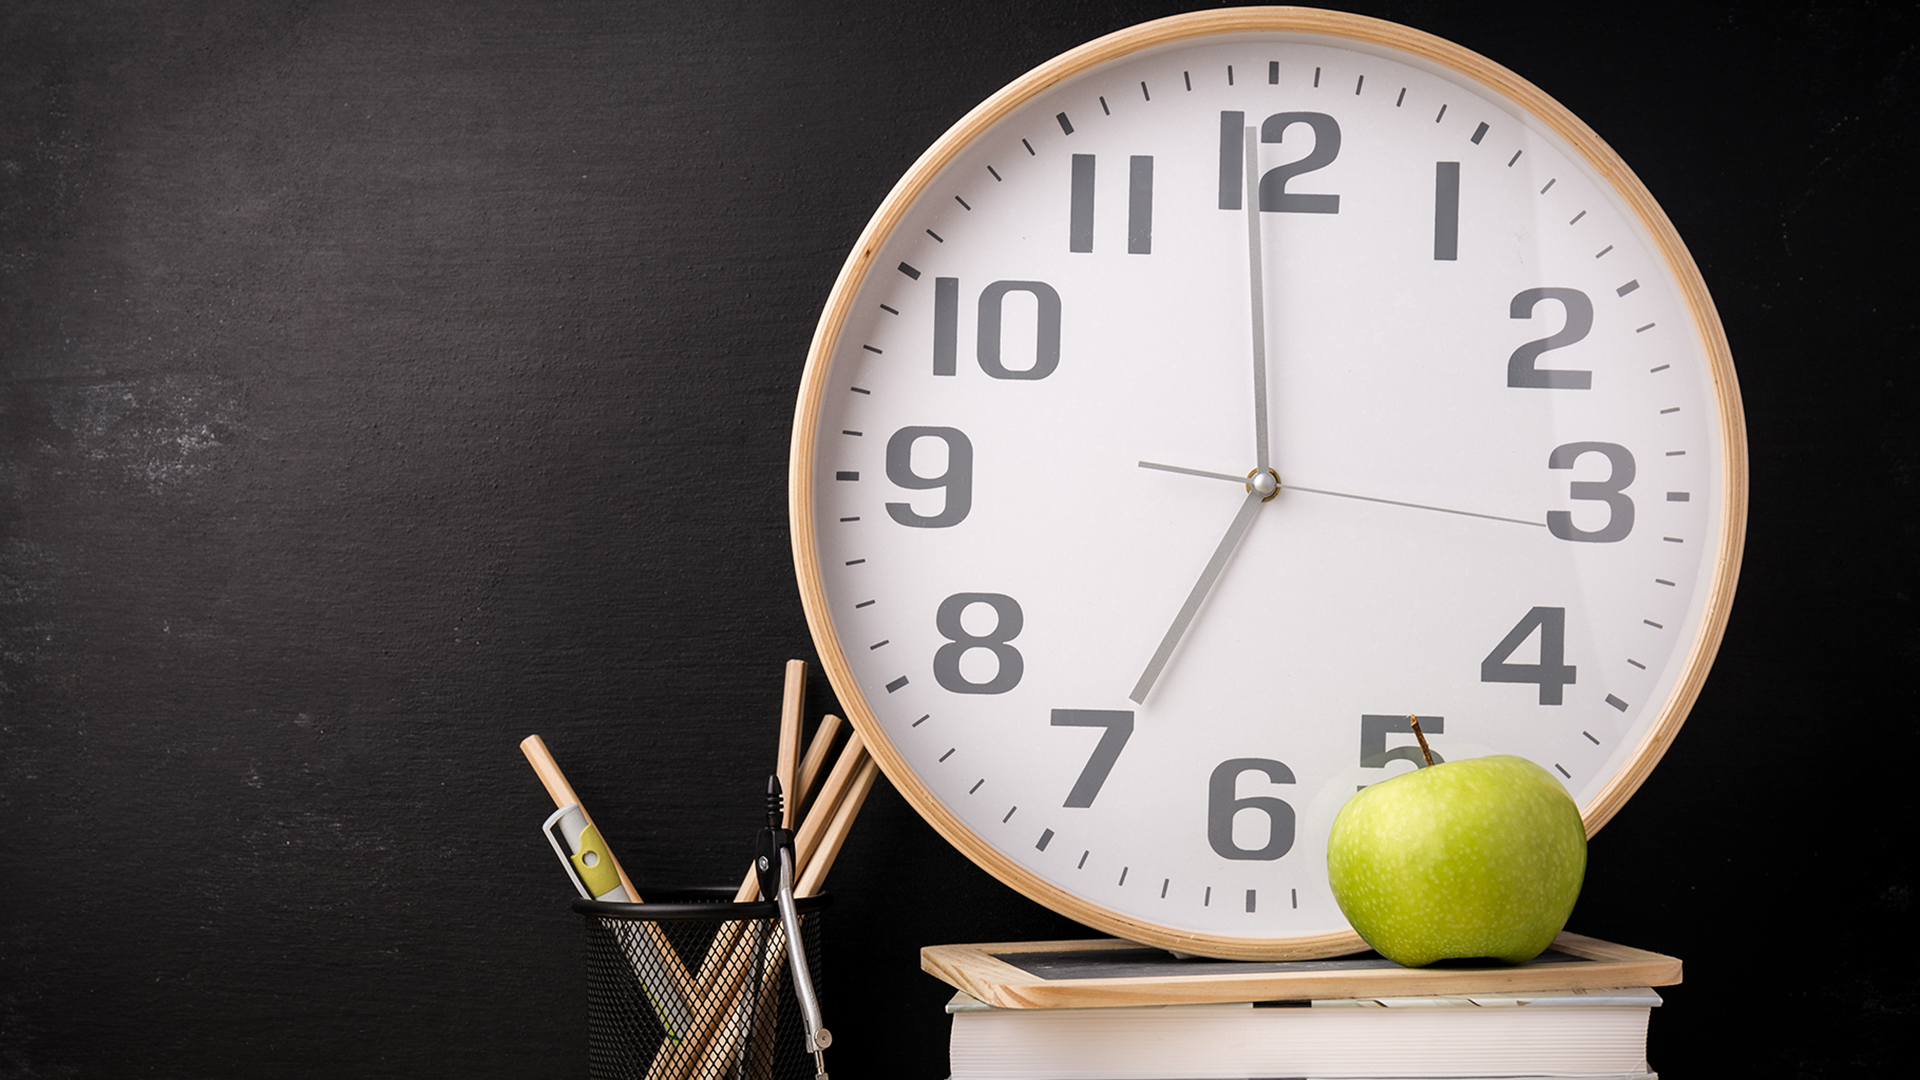 school-analog-clock-today-tease-001-180503_ce5333f7e35bc1b9ed1d0055cffd1ecd.jpg